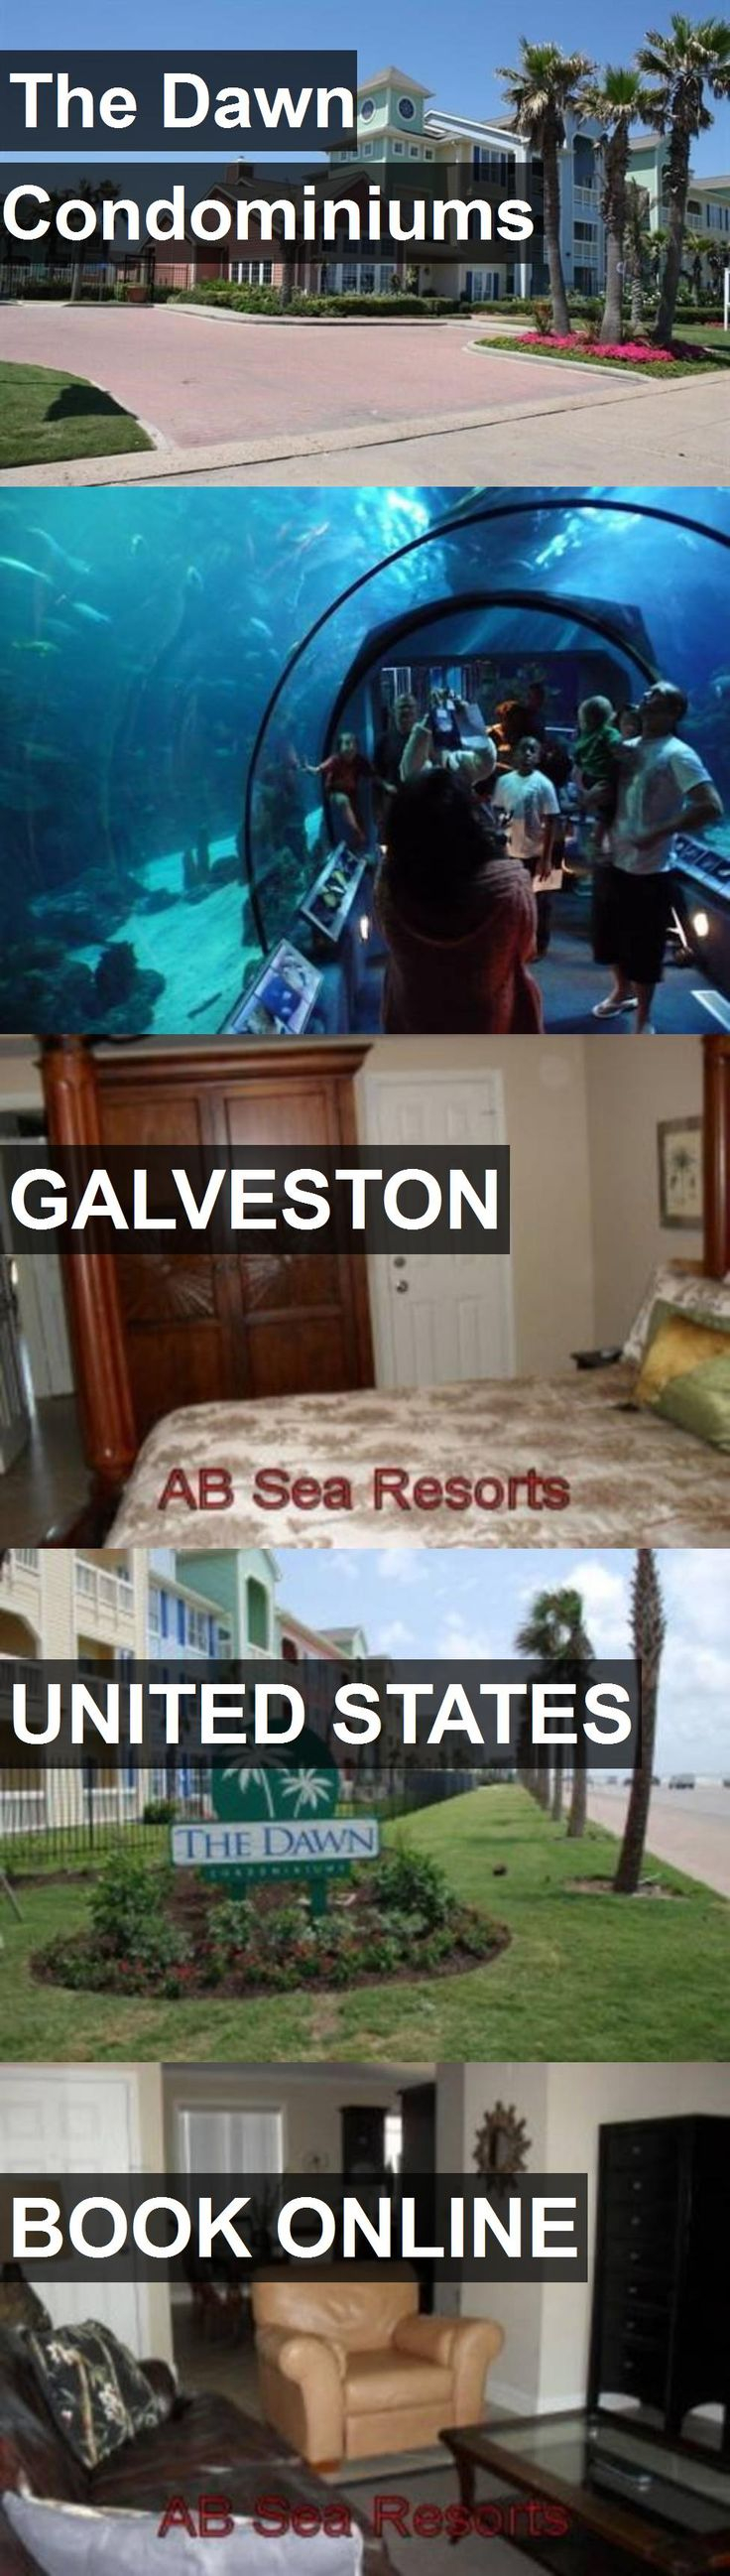 Hotel The Dawn Condominiums in Galveston, United States. For more information, photos, reviews and best prices please follow the link. #UnitedStates #Galveston #travel #vacation #hotel